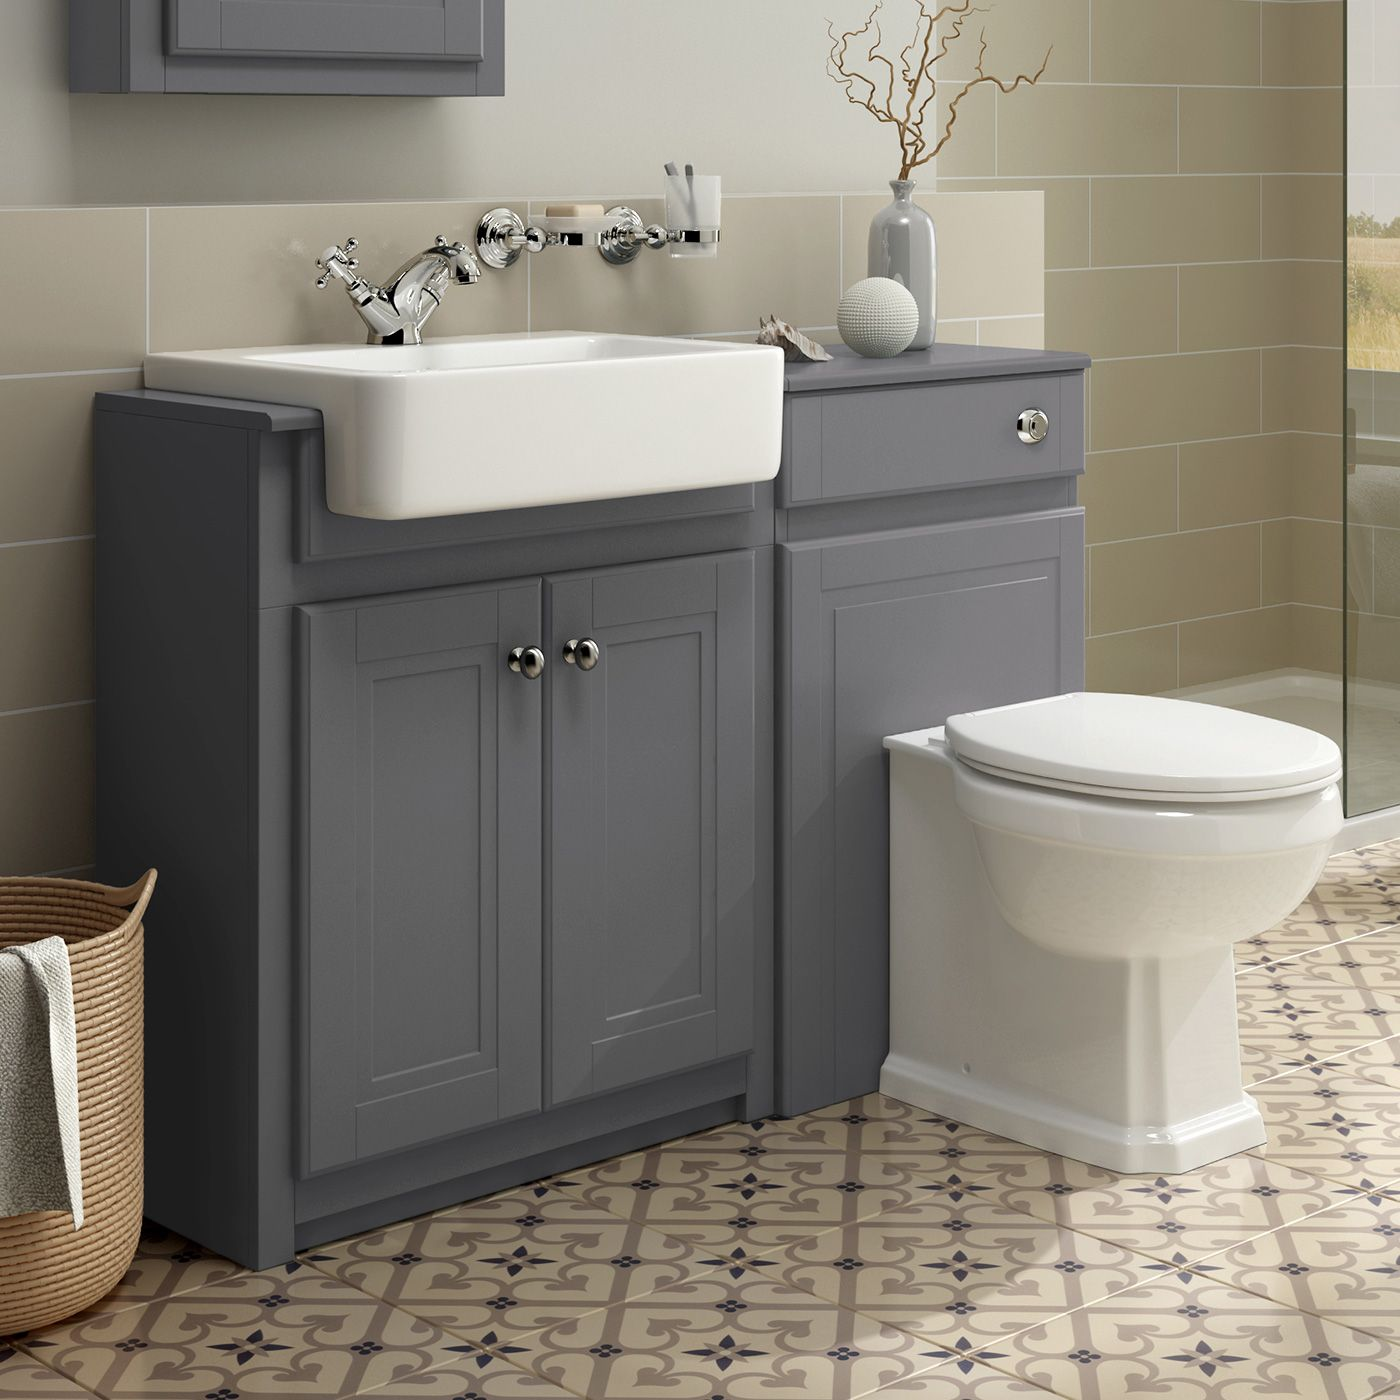 Are you looking for the bathroom of your dreams? Stunning